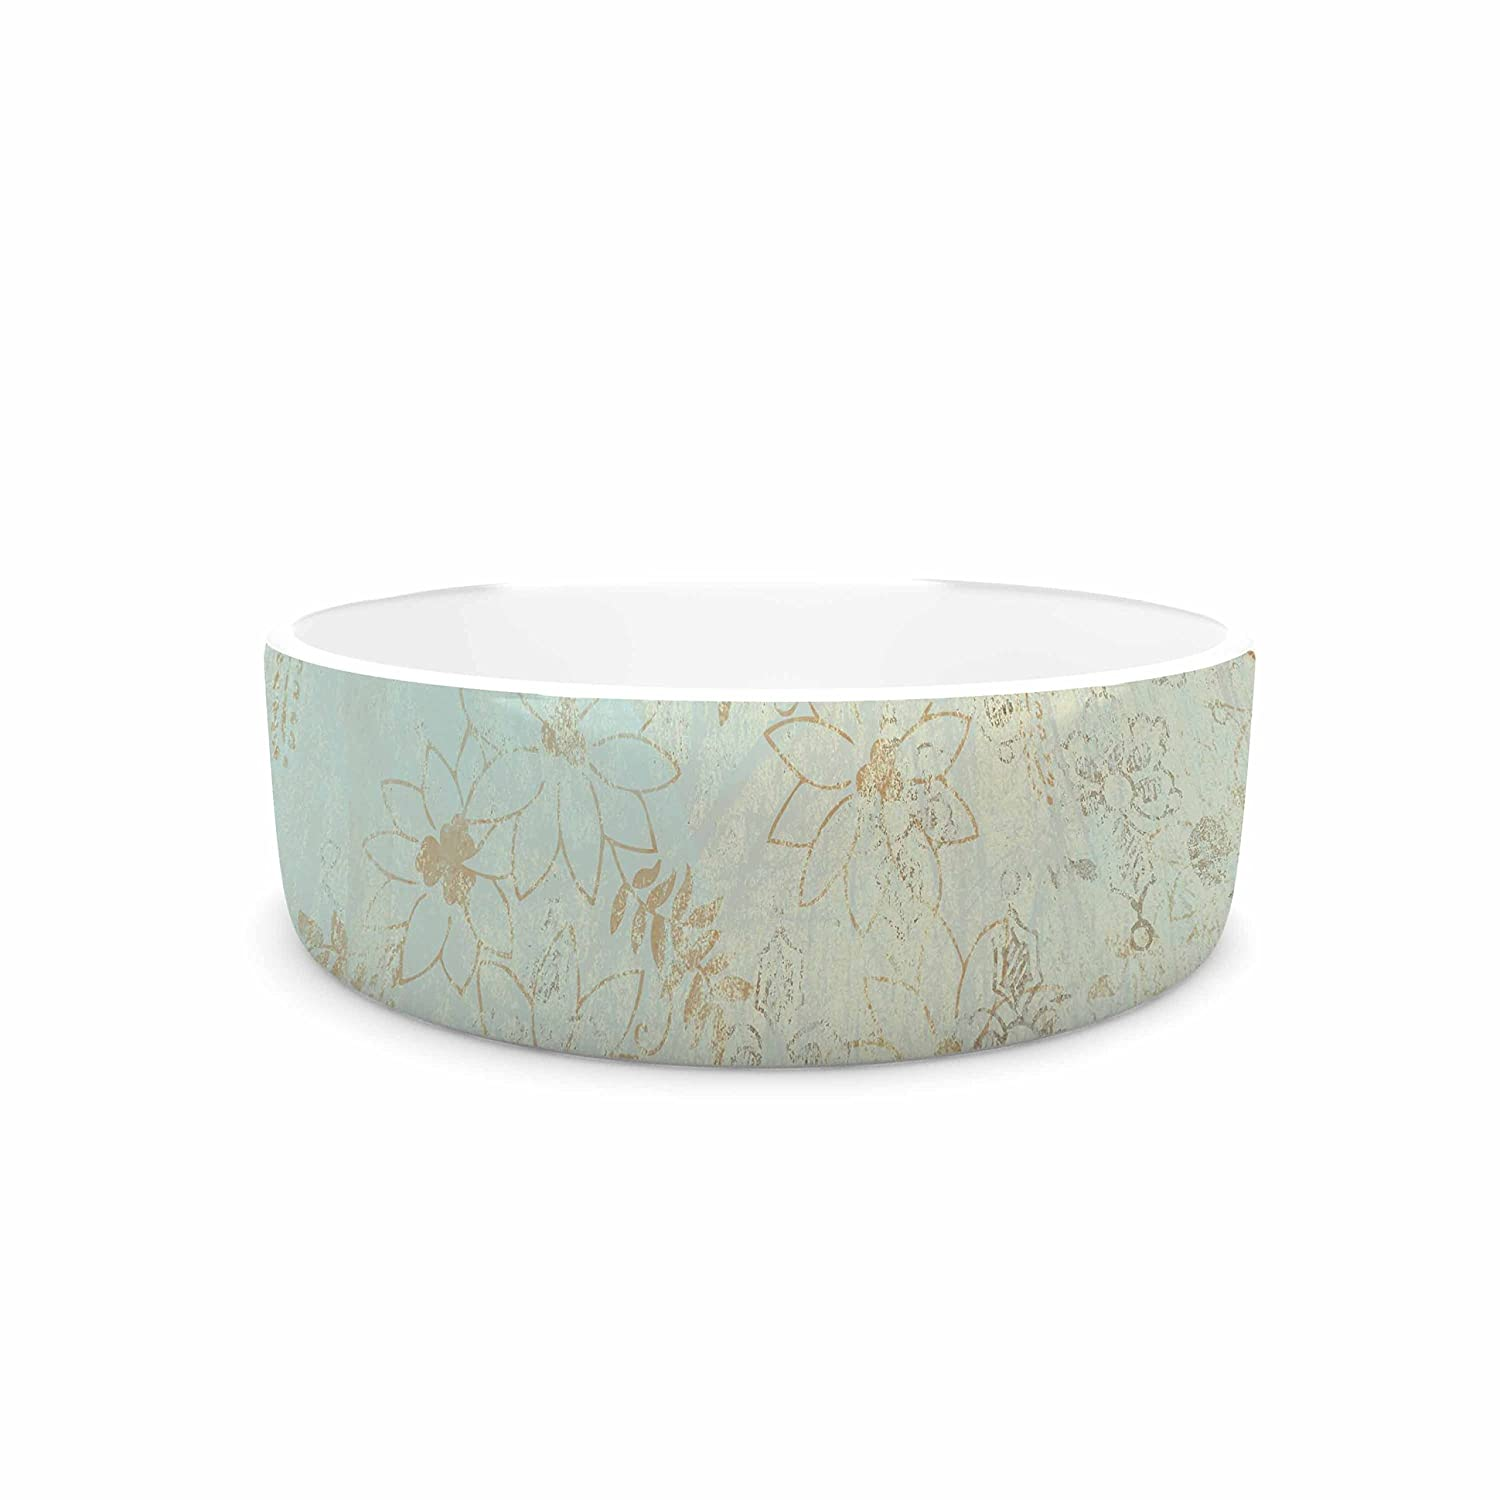 KESS InHouse Li Zamperini Vintage  Beige Teal Pet Bowl, 7